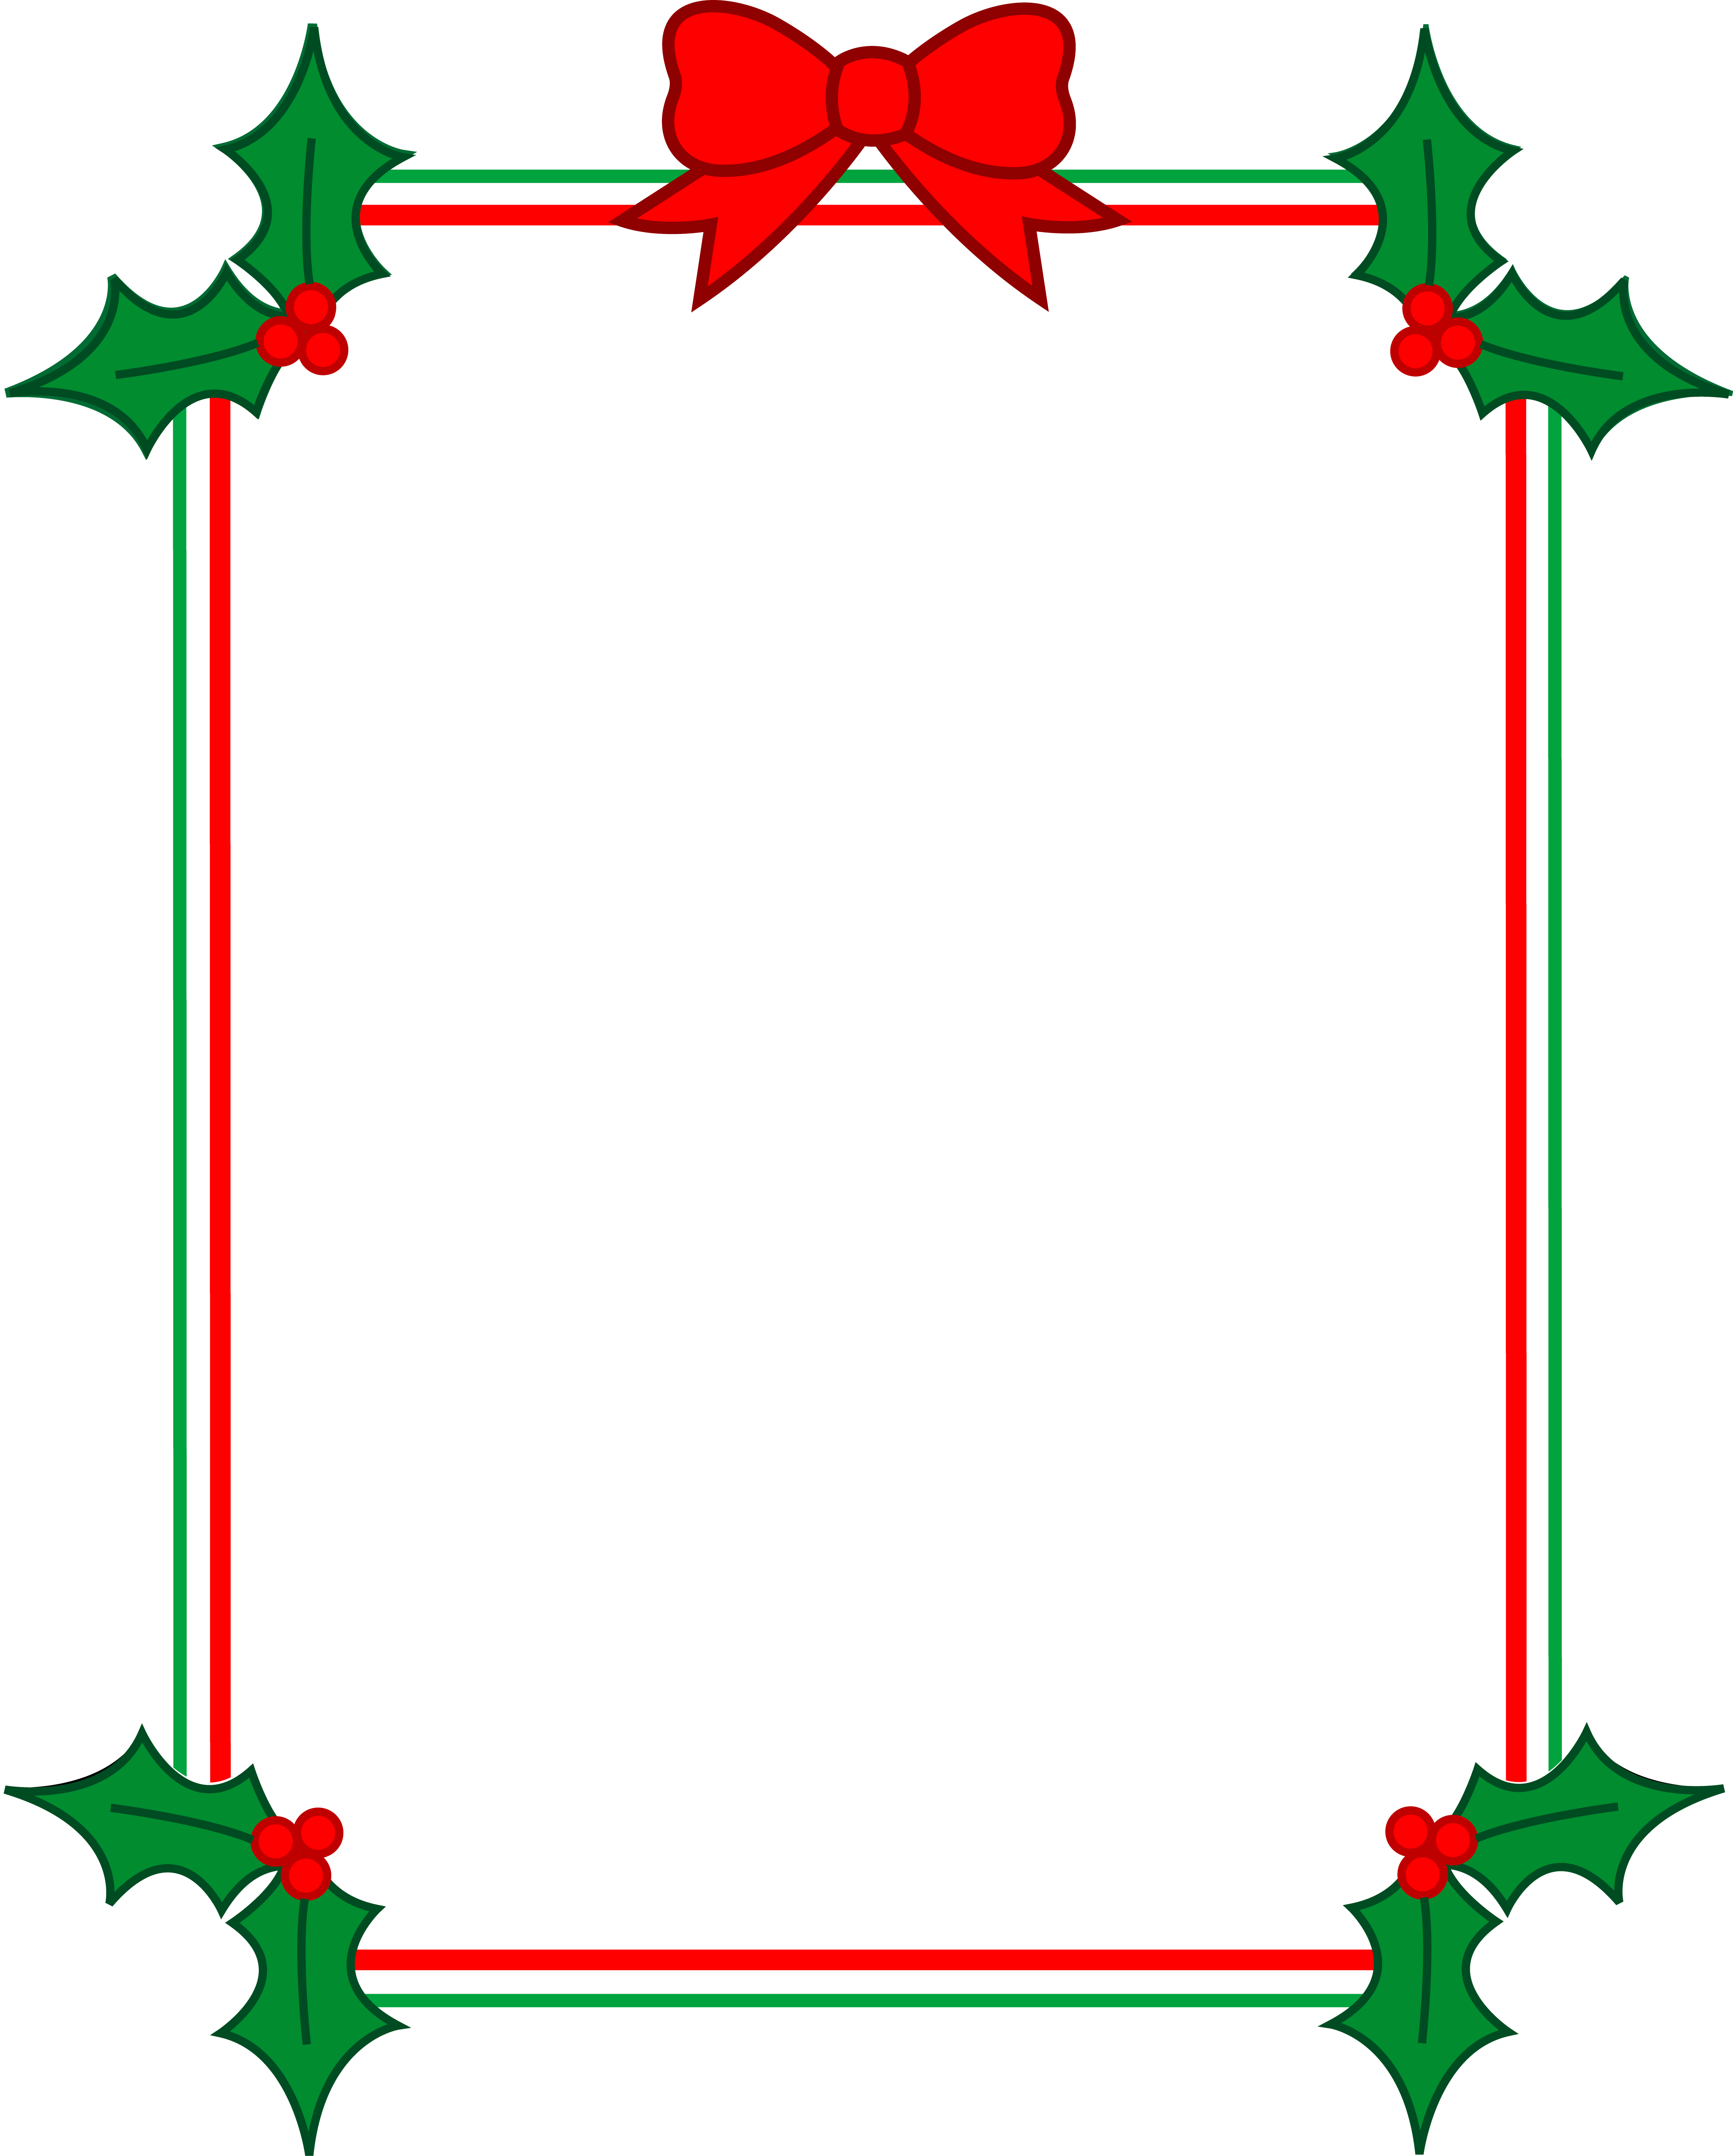 Free Christmas Holiday Borders clipart free image.